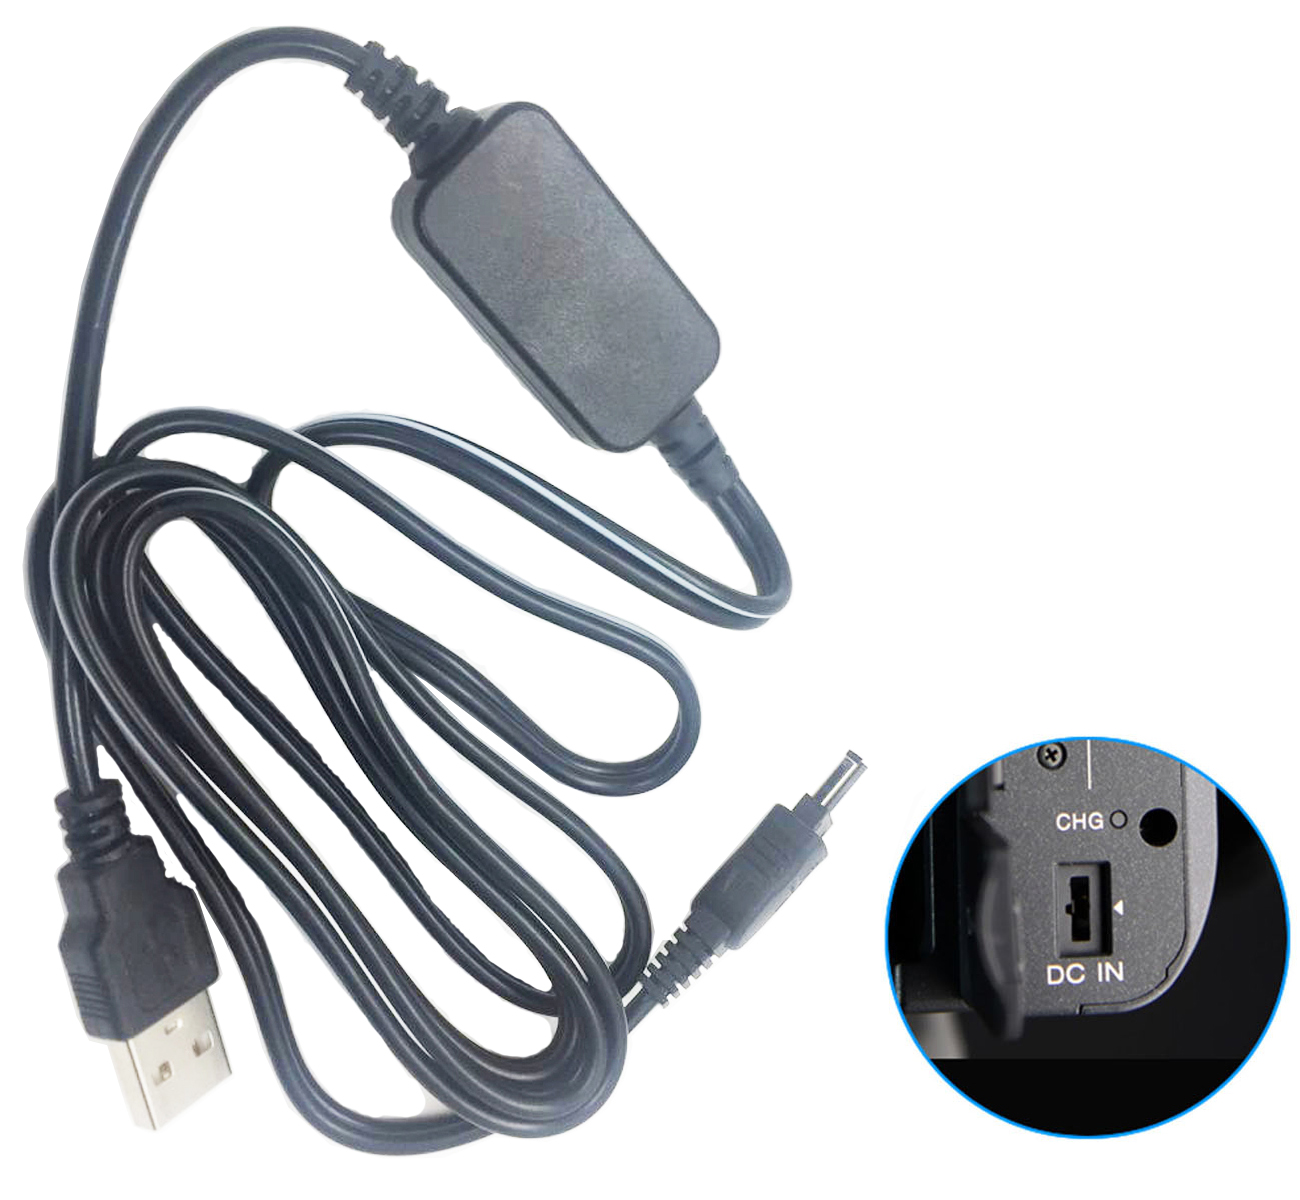 CCD-TRV78 Handycam Camcorder CCD-TRV75 CCD-TRV36 AC Adapter Power Supply for Sony CCD-TRV35 CCD-TRV37